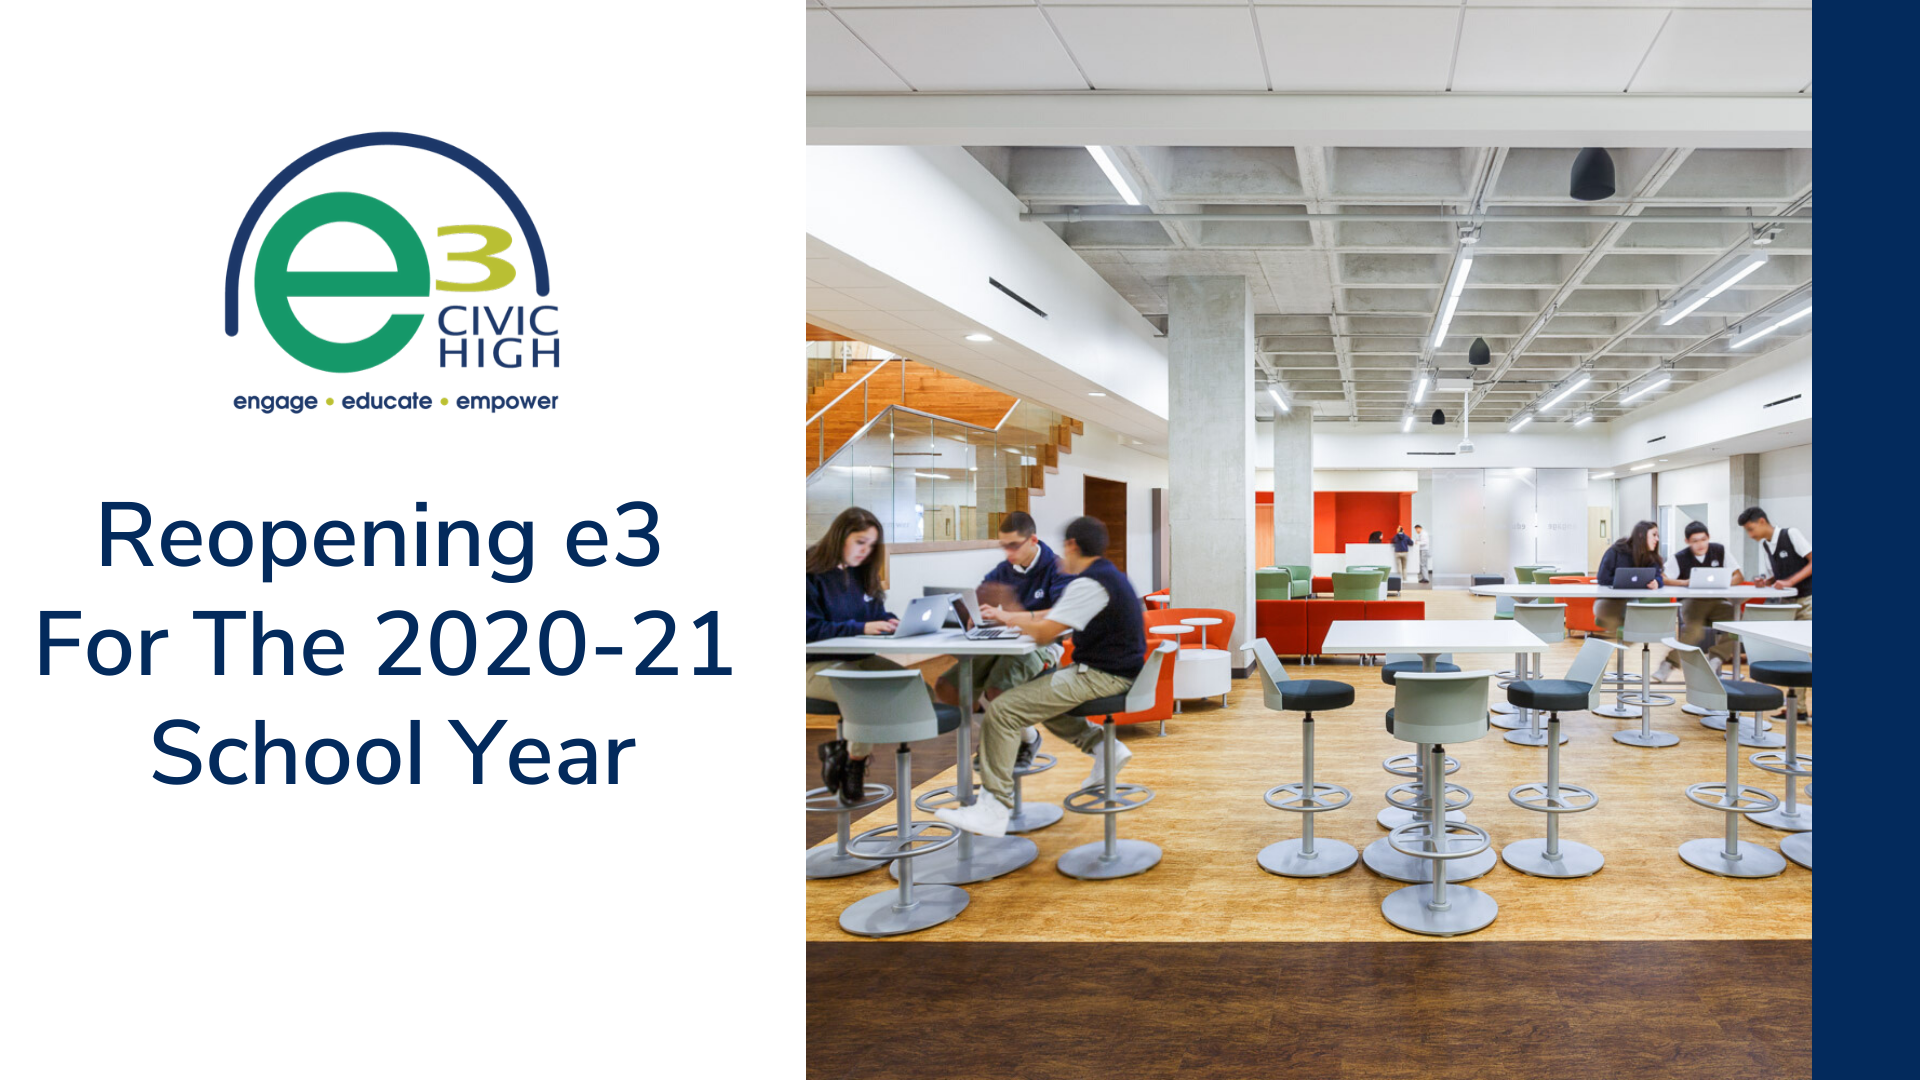 Reopening e3 for the 2020-21 School Year